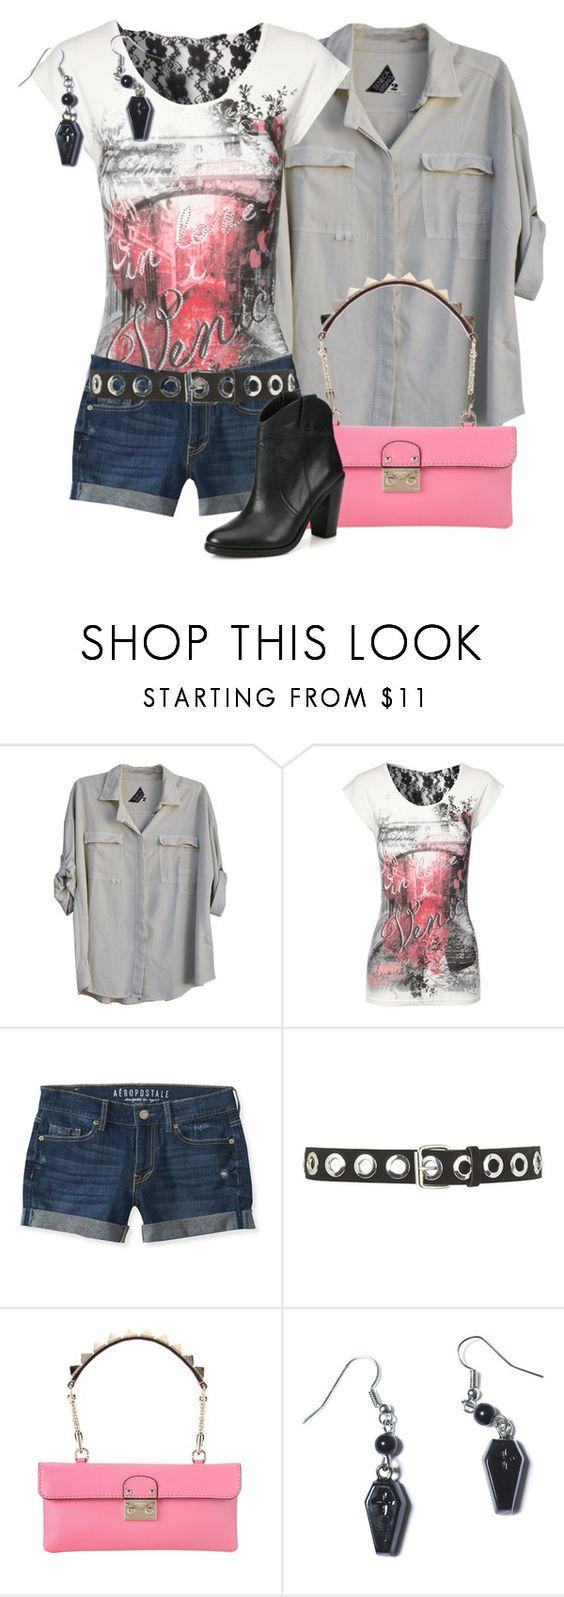 """""""Sourpuss"""" by meltog ❤ liked on Polyvore featuring Seneca Rising, Jane Norman, Aéropostale, Topshop, Valentino, Sourpuss, Joie, women's clothing, women's fashion and women"""